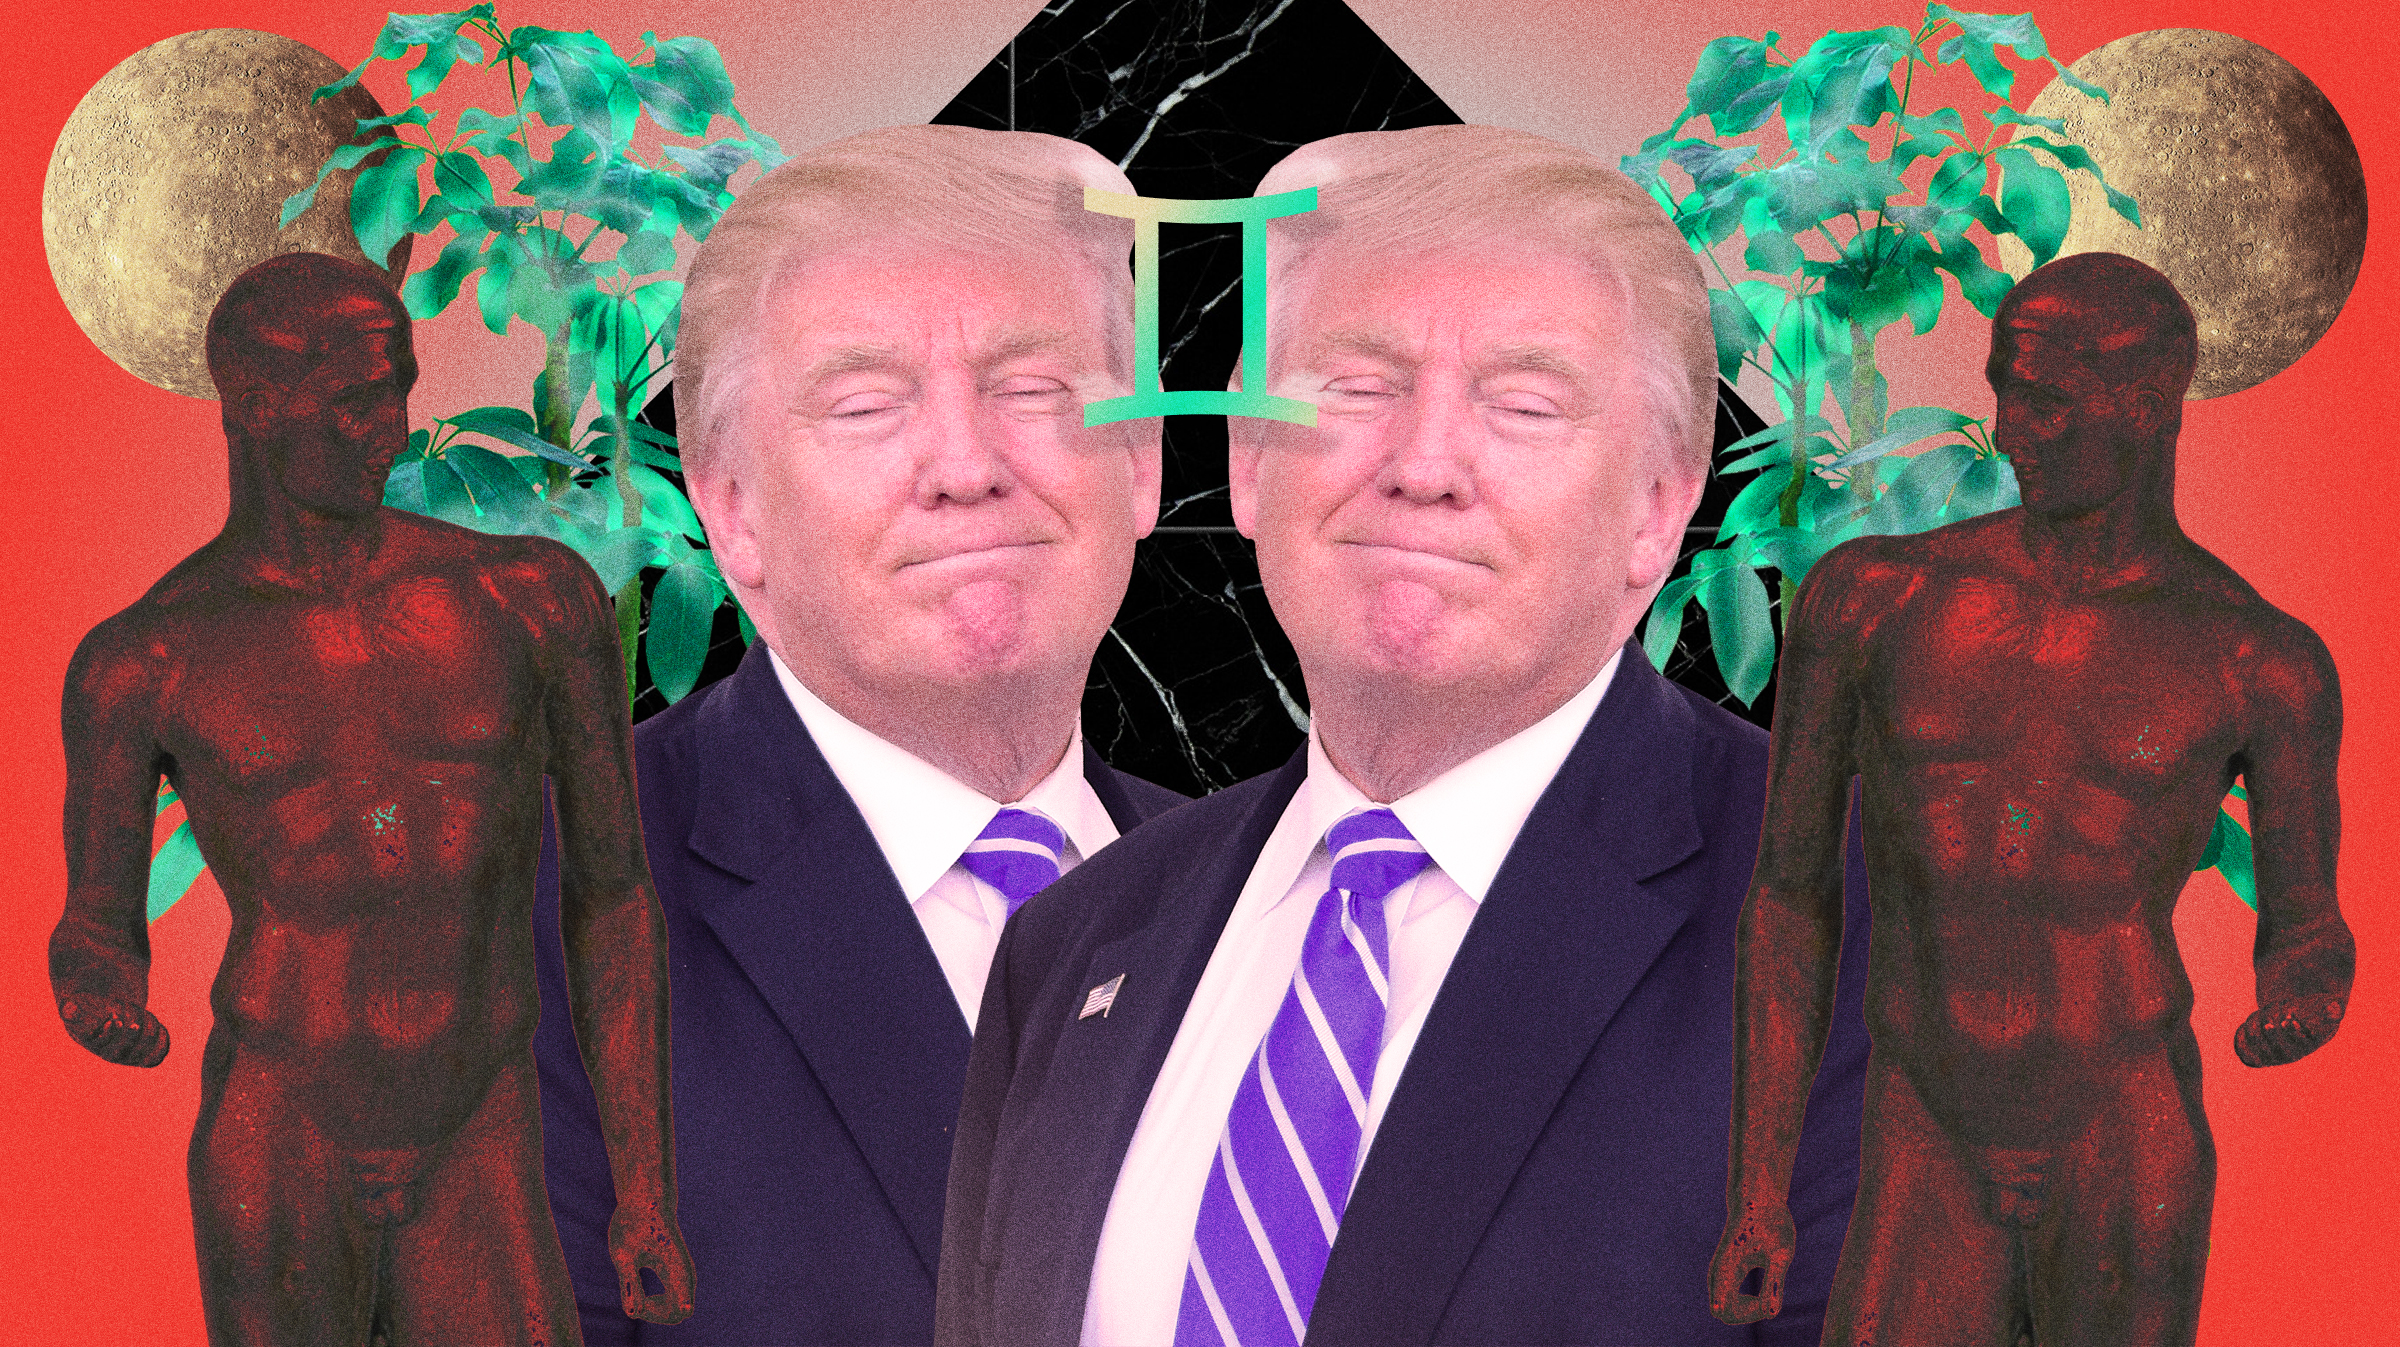 An Astrologer Predicts the Fate of Everyone in the White House - VICE